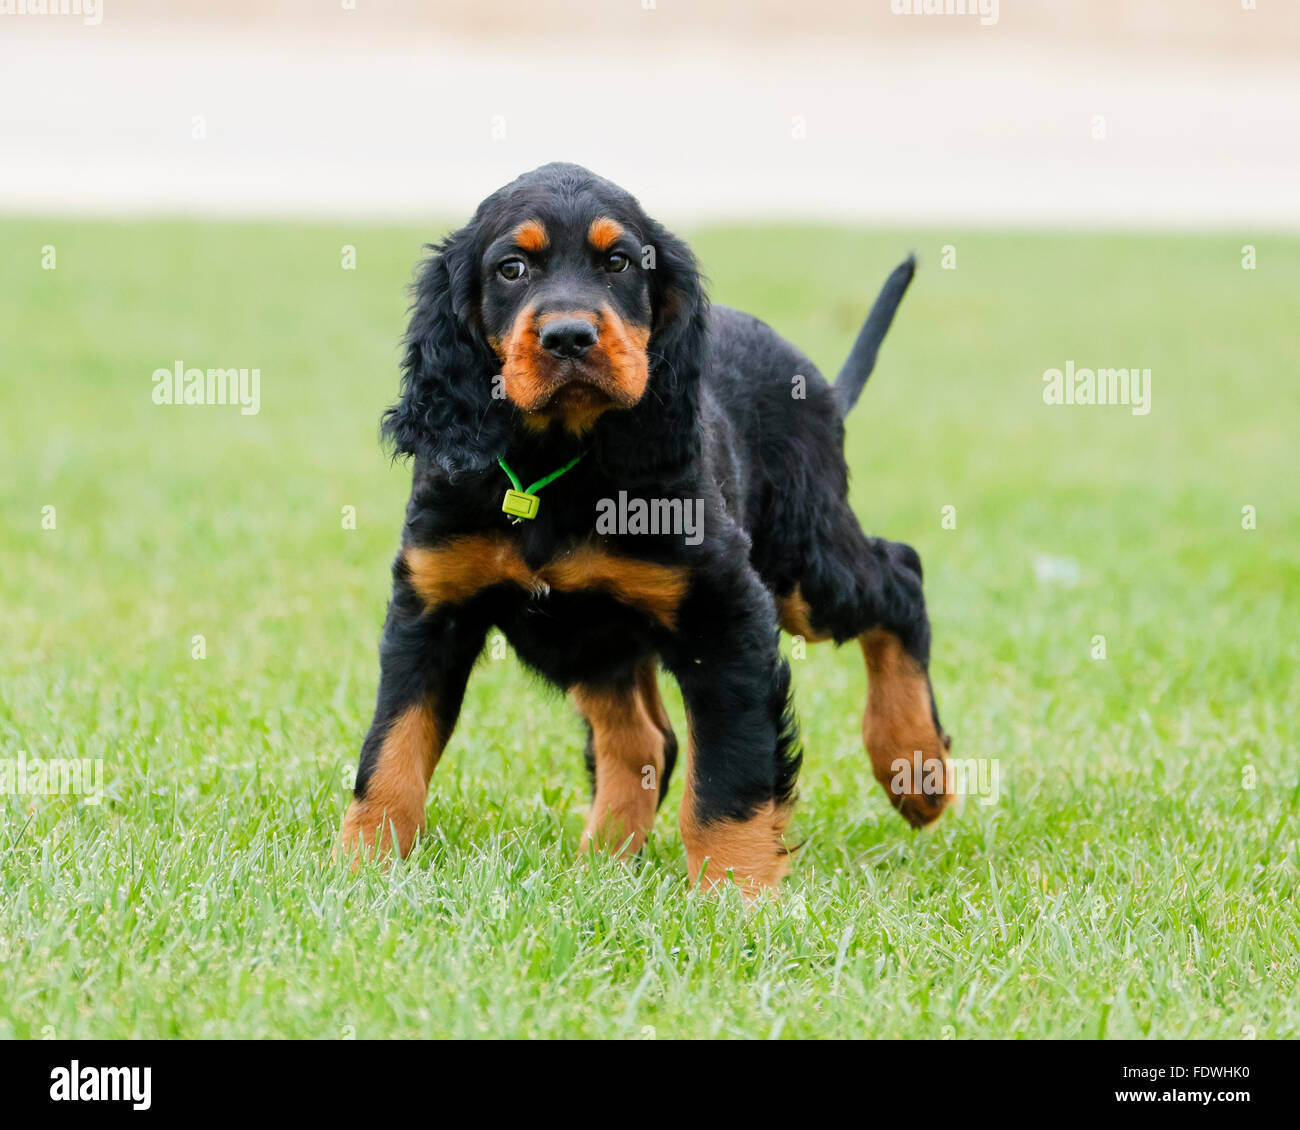 Gordon Setter puppy looking unsure at the park - Stock Image